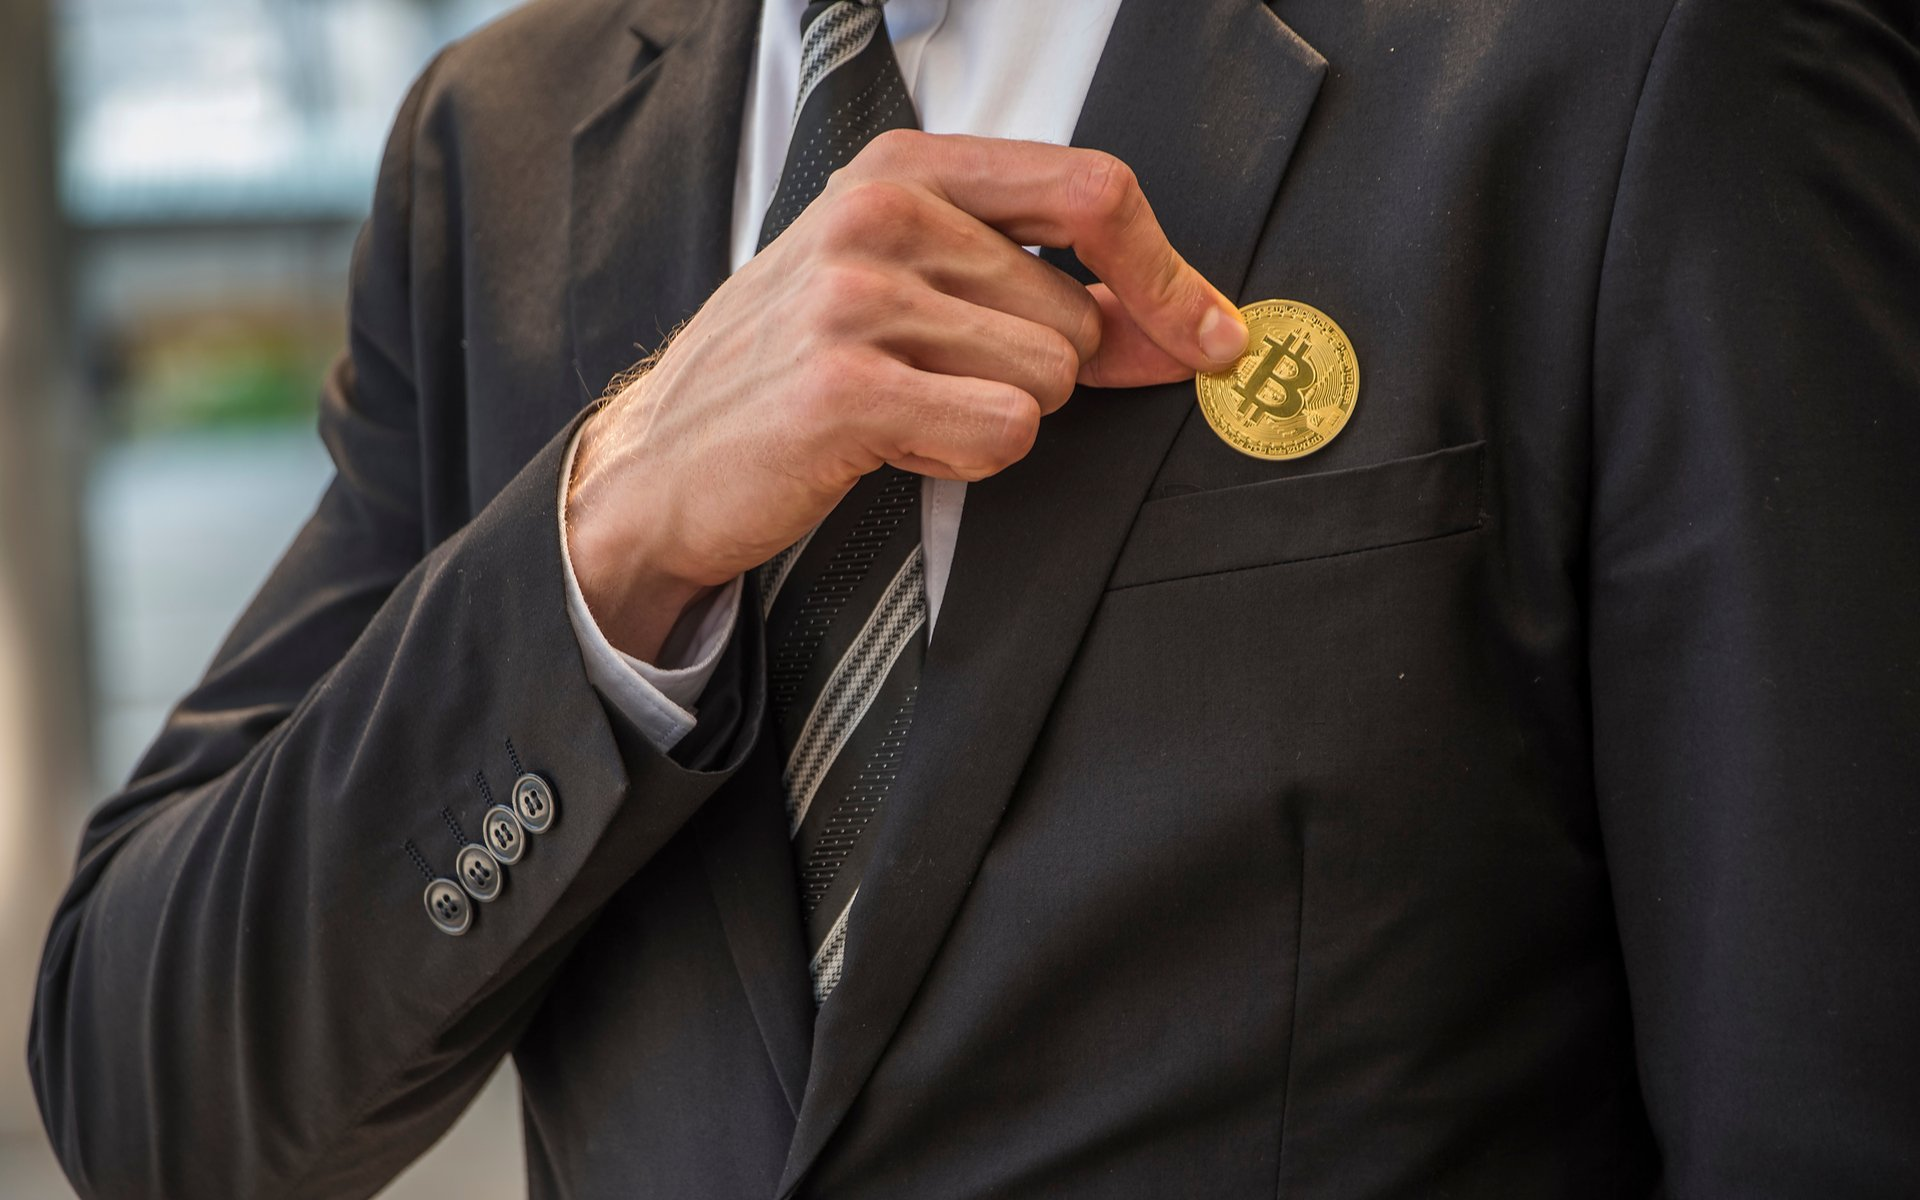 how to get rich with bitcoin